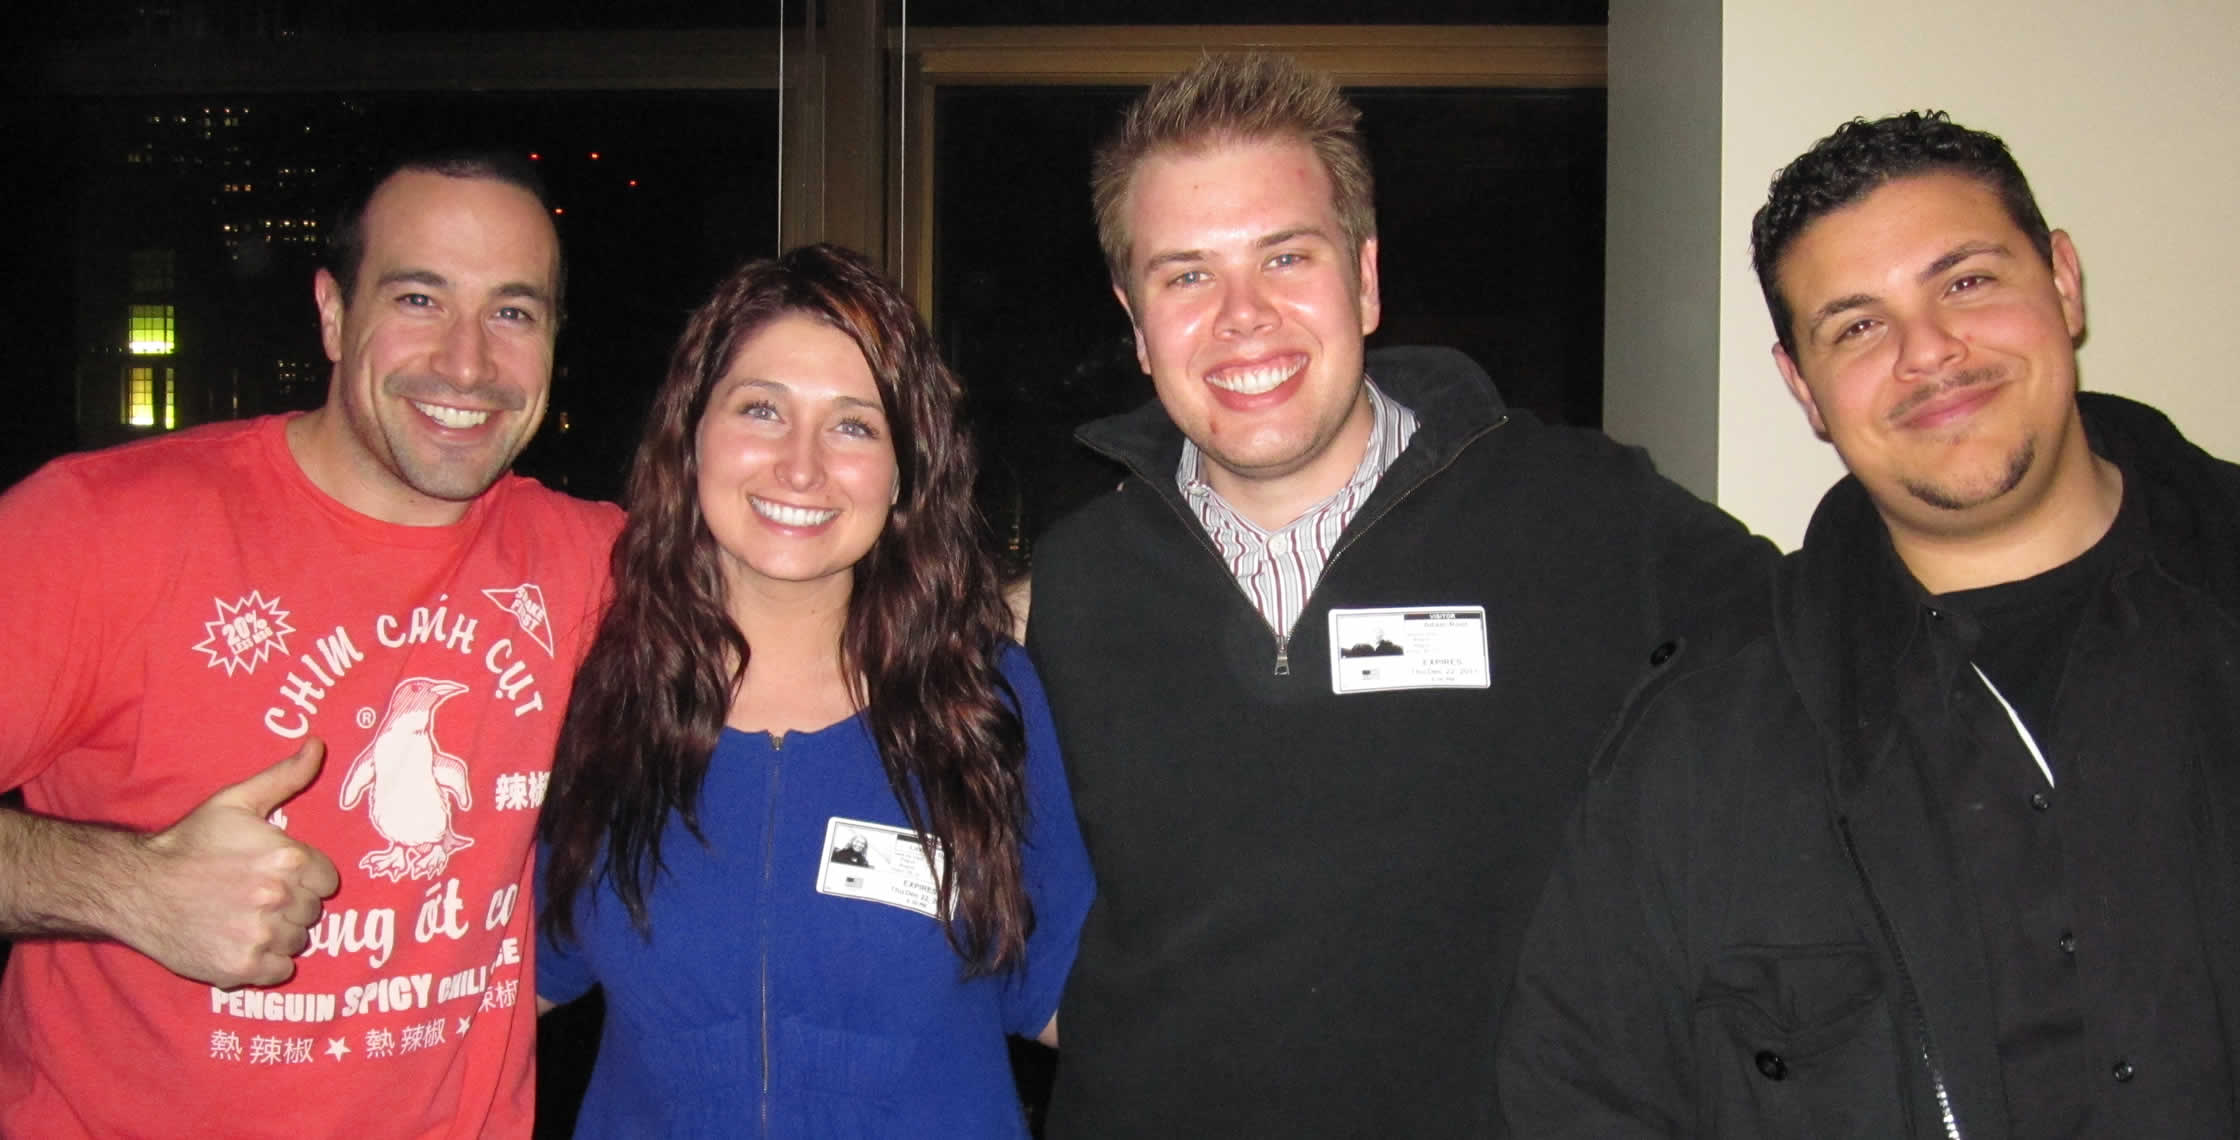 Ben Nadel at InVision Office 2011 (New York City) with: Lindsey Root, Adam Root, and Clark Valberg